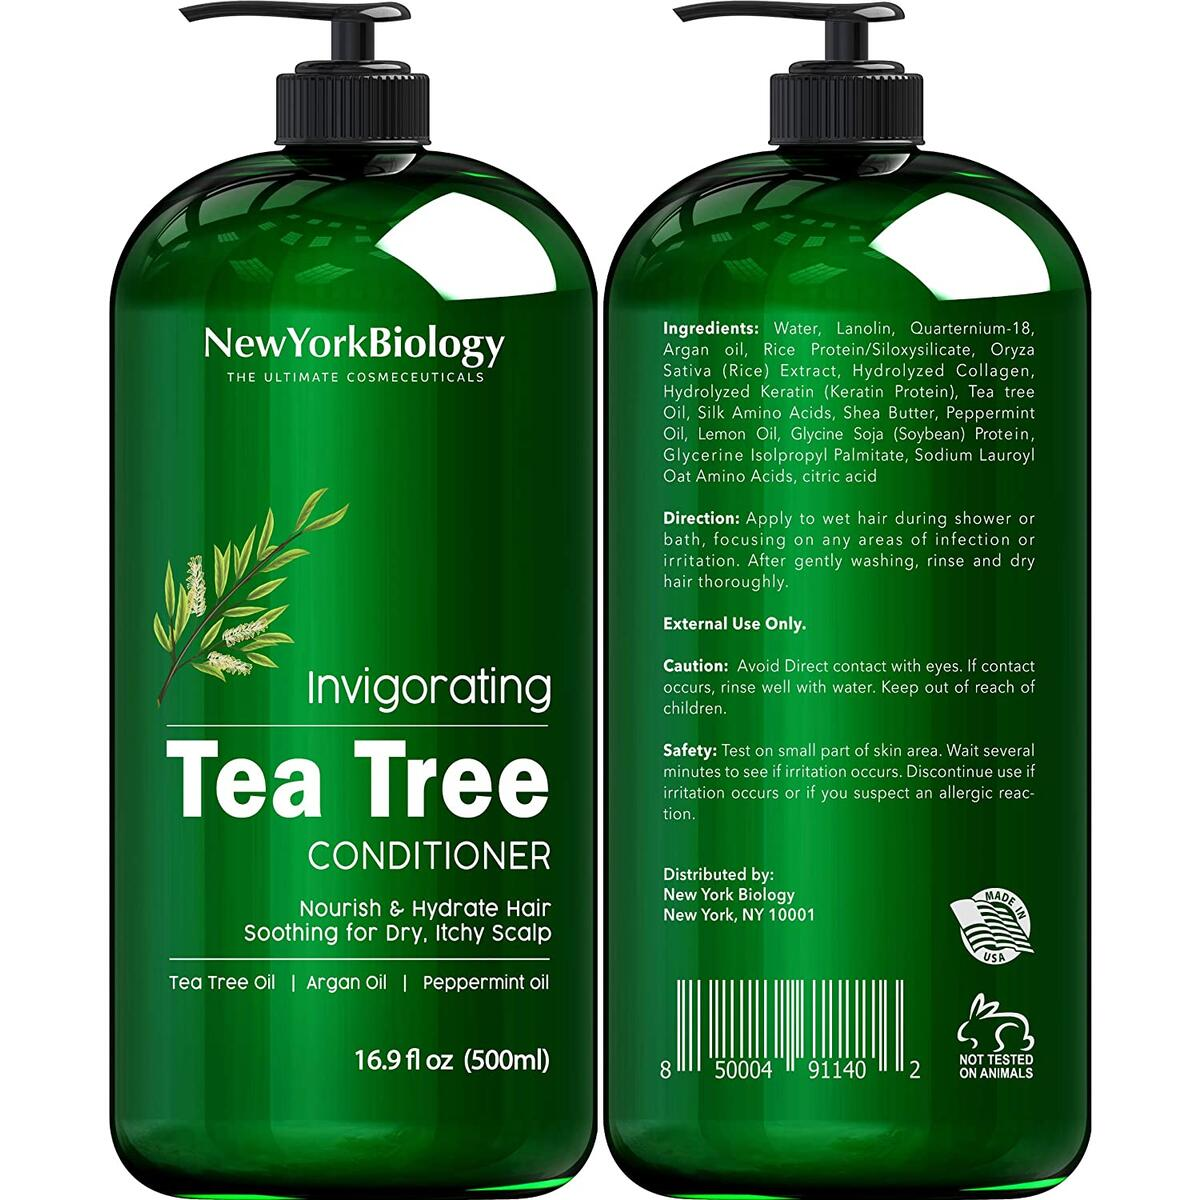 Tea Tree Shampoo Conditioner set